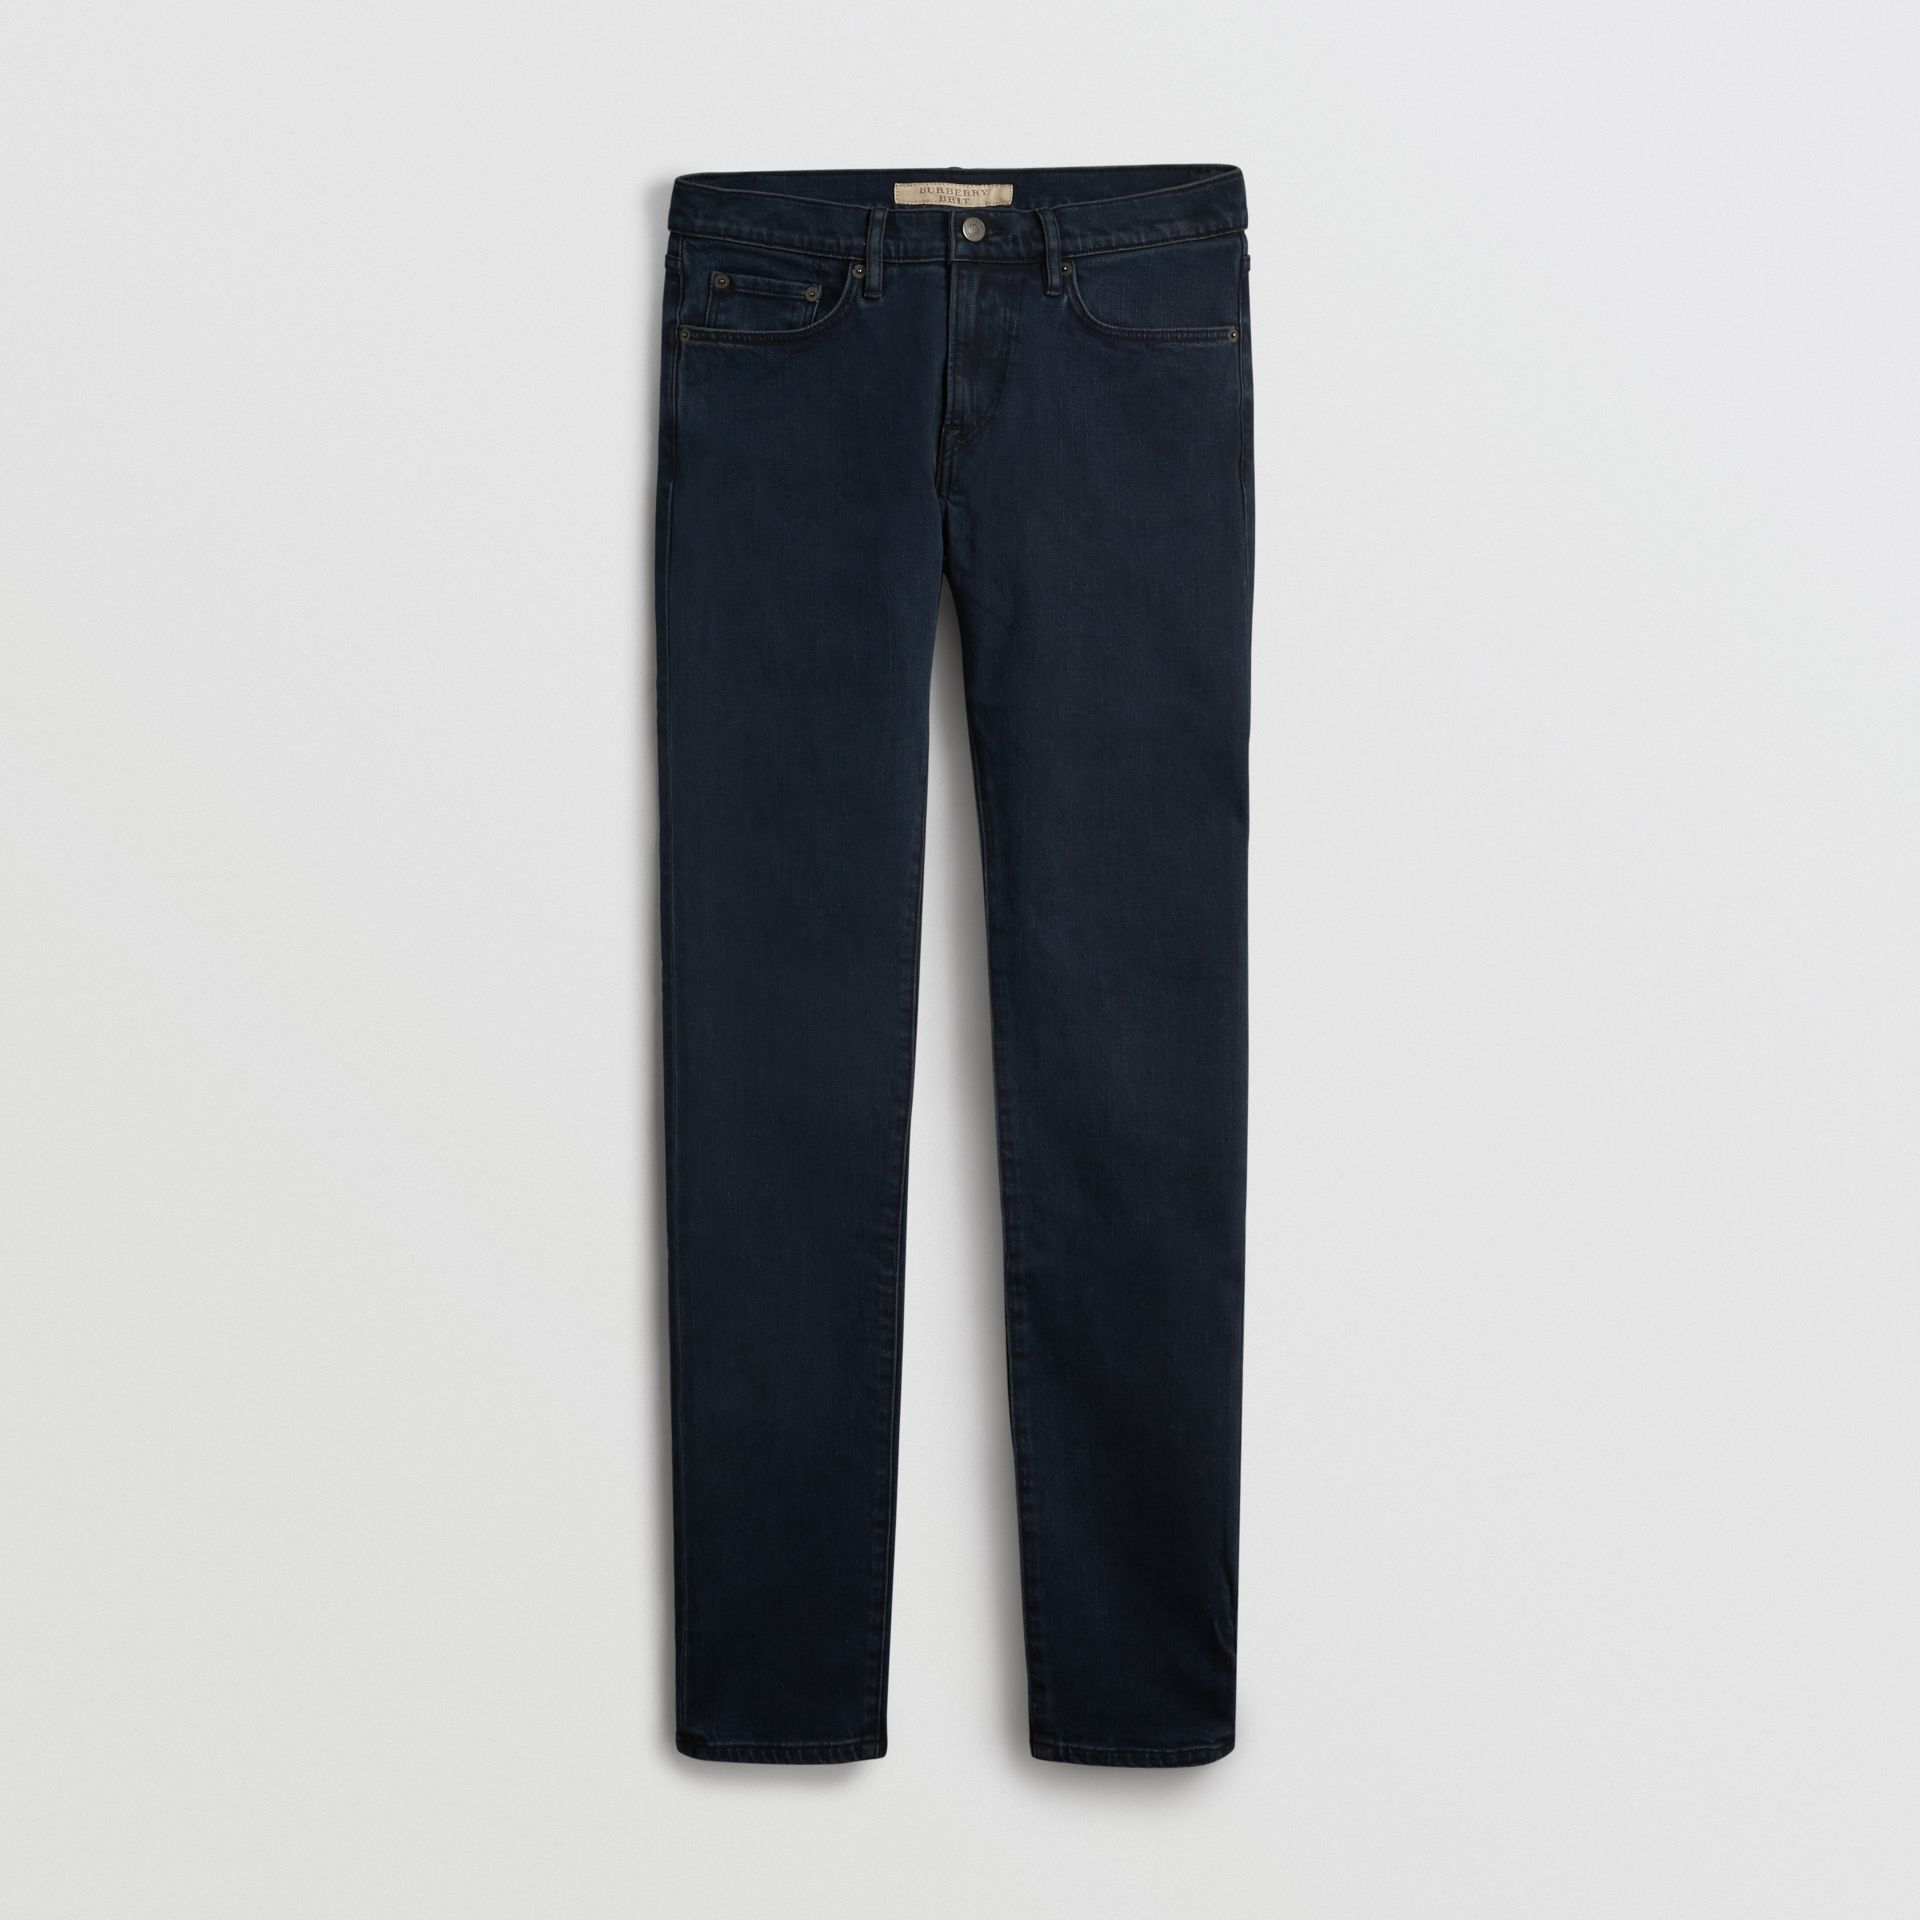 Slim Fit Stretch Denim Jeans in Dark Indigo - Men | Burberry United States - gallery image 3